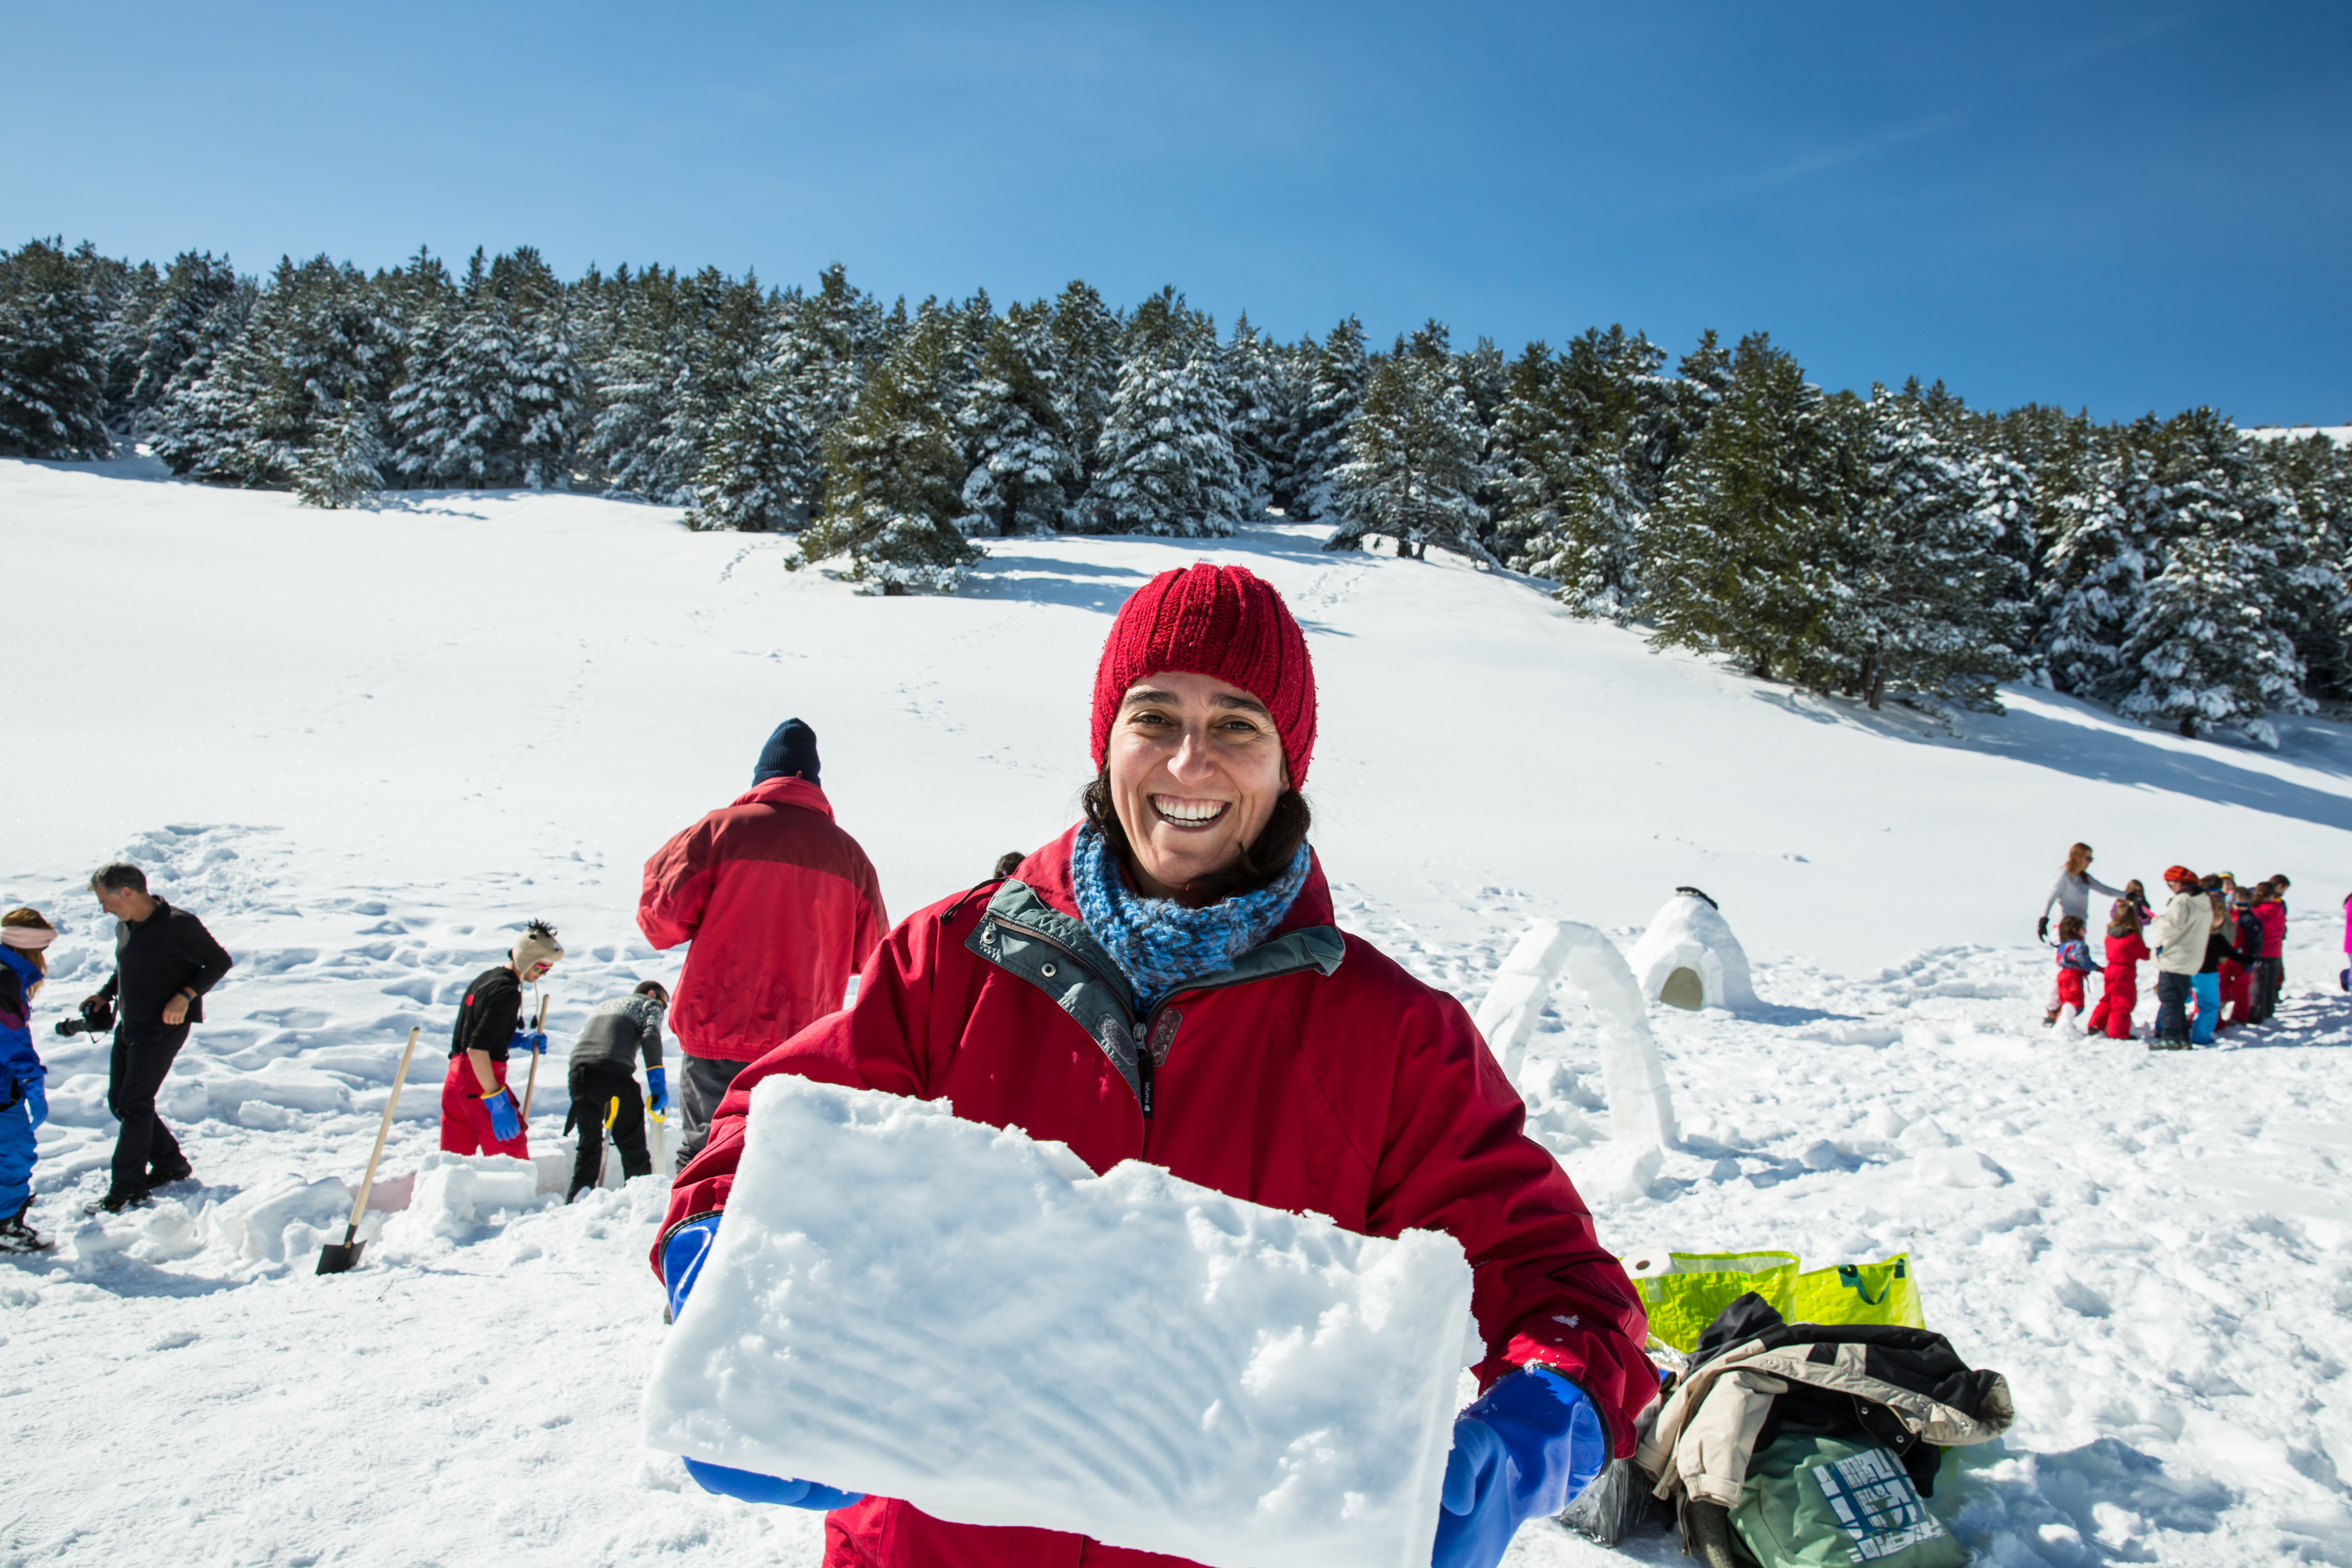 Smiling faces and lots of fun. Are you up for building an igloo?